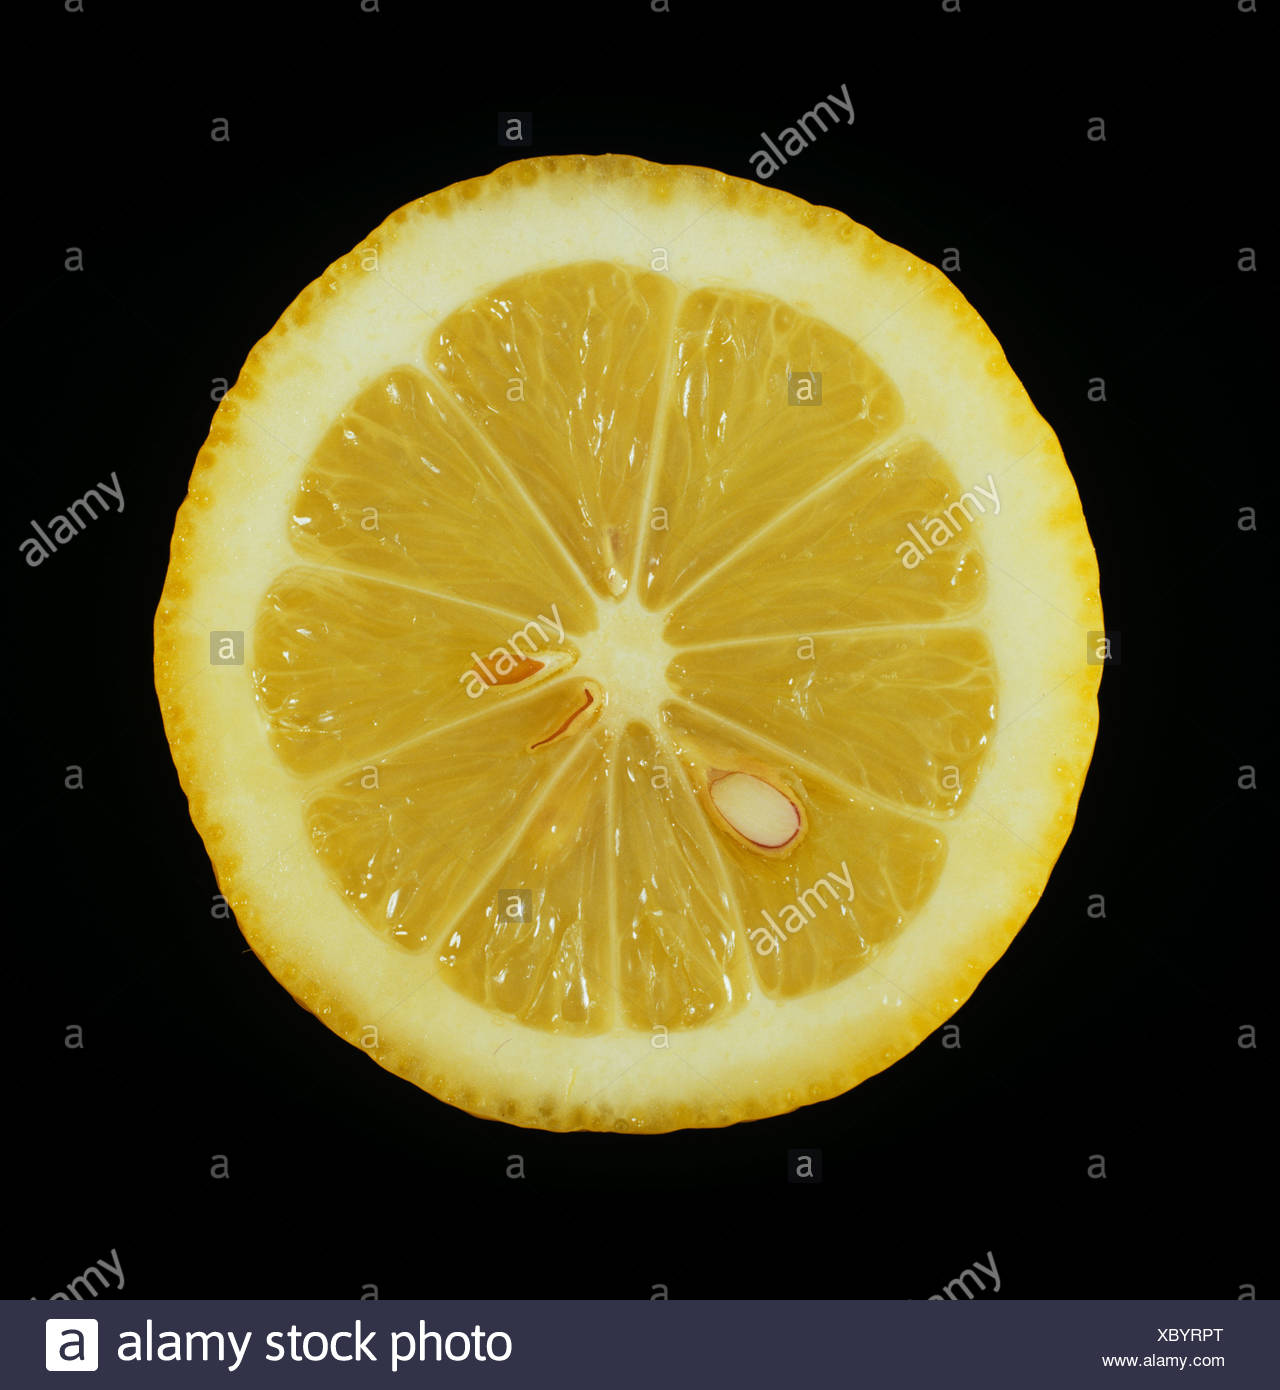 Cut section of a citrus fruit lemon variety Lamas Stock Photo